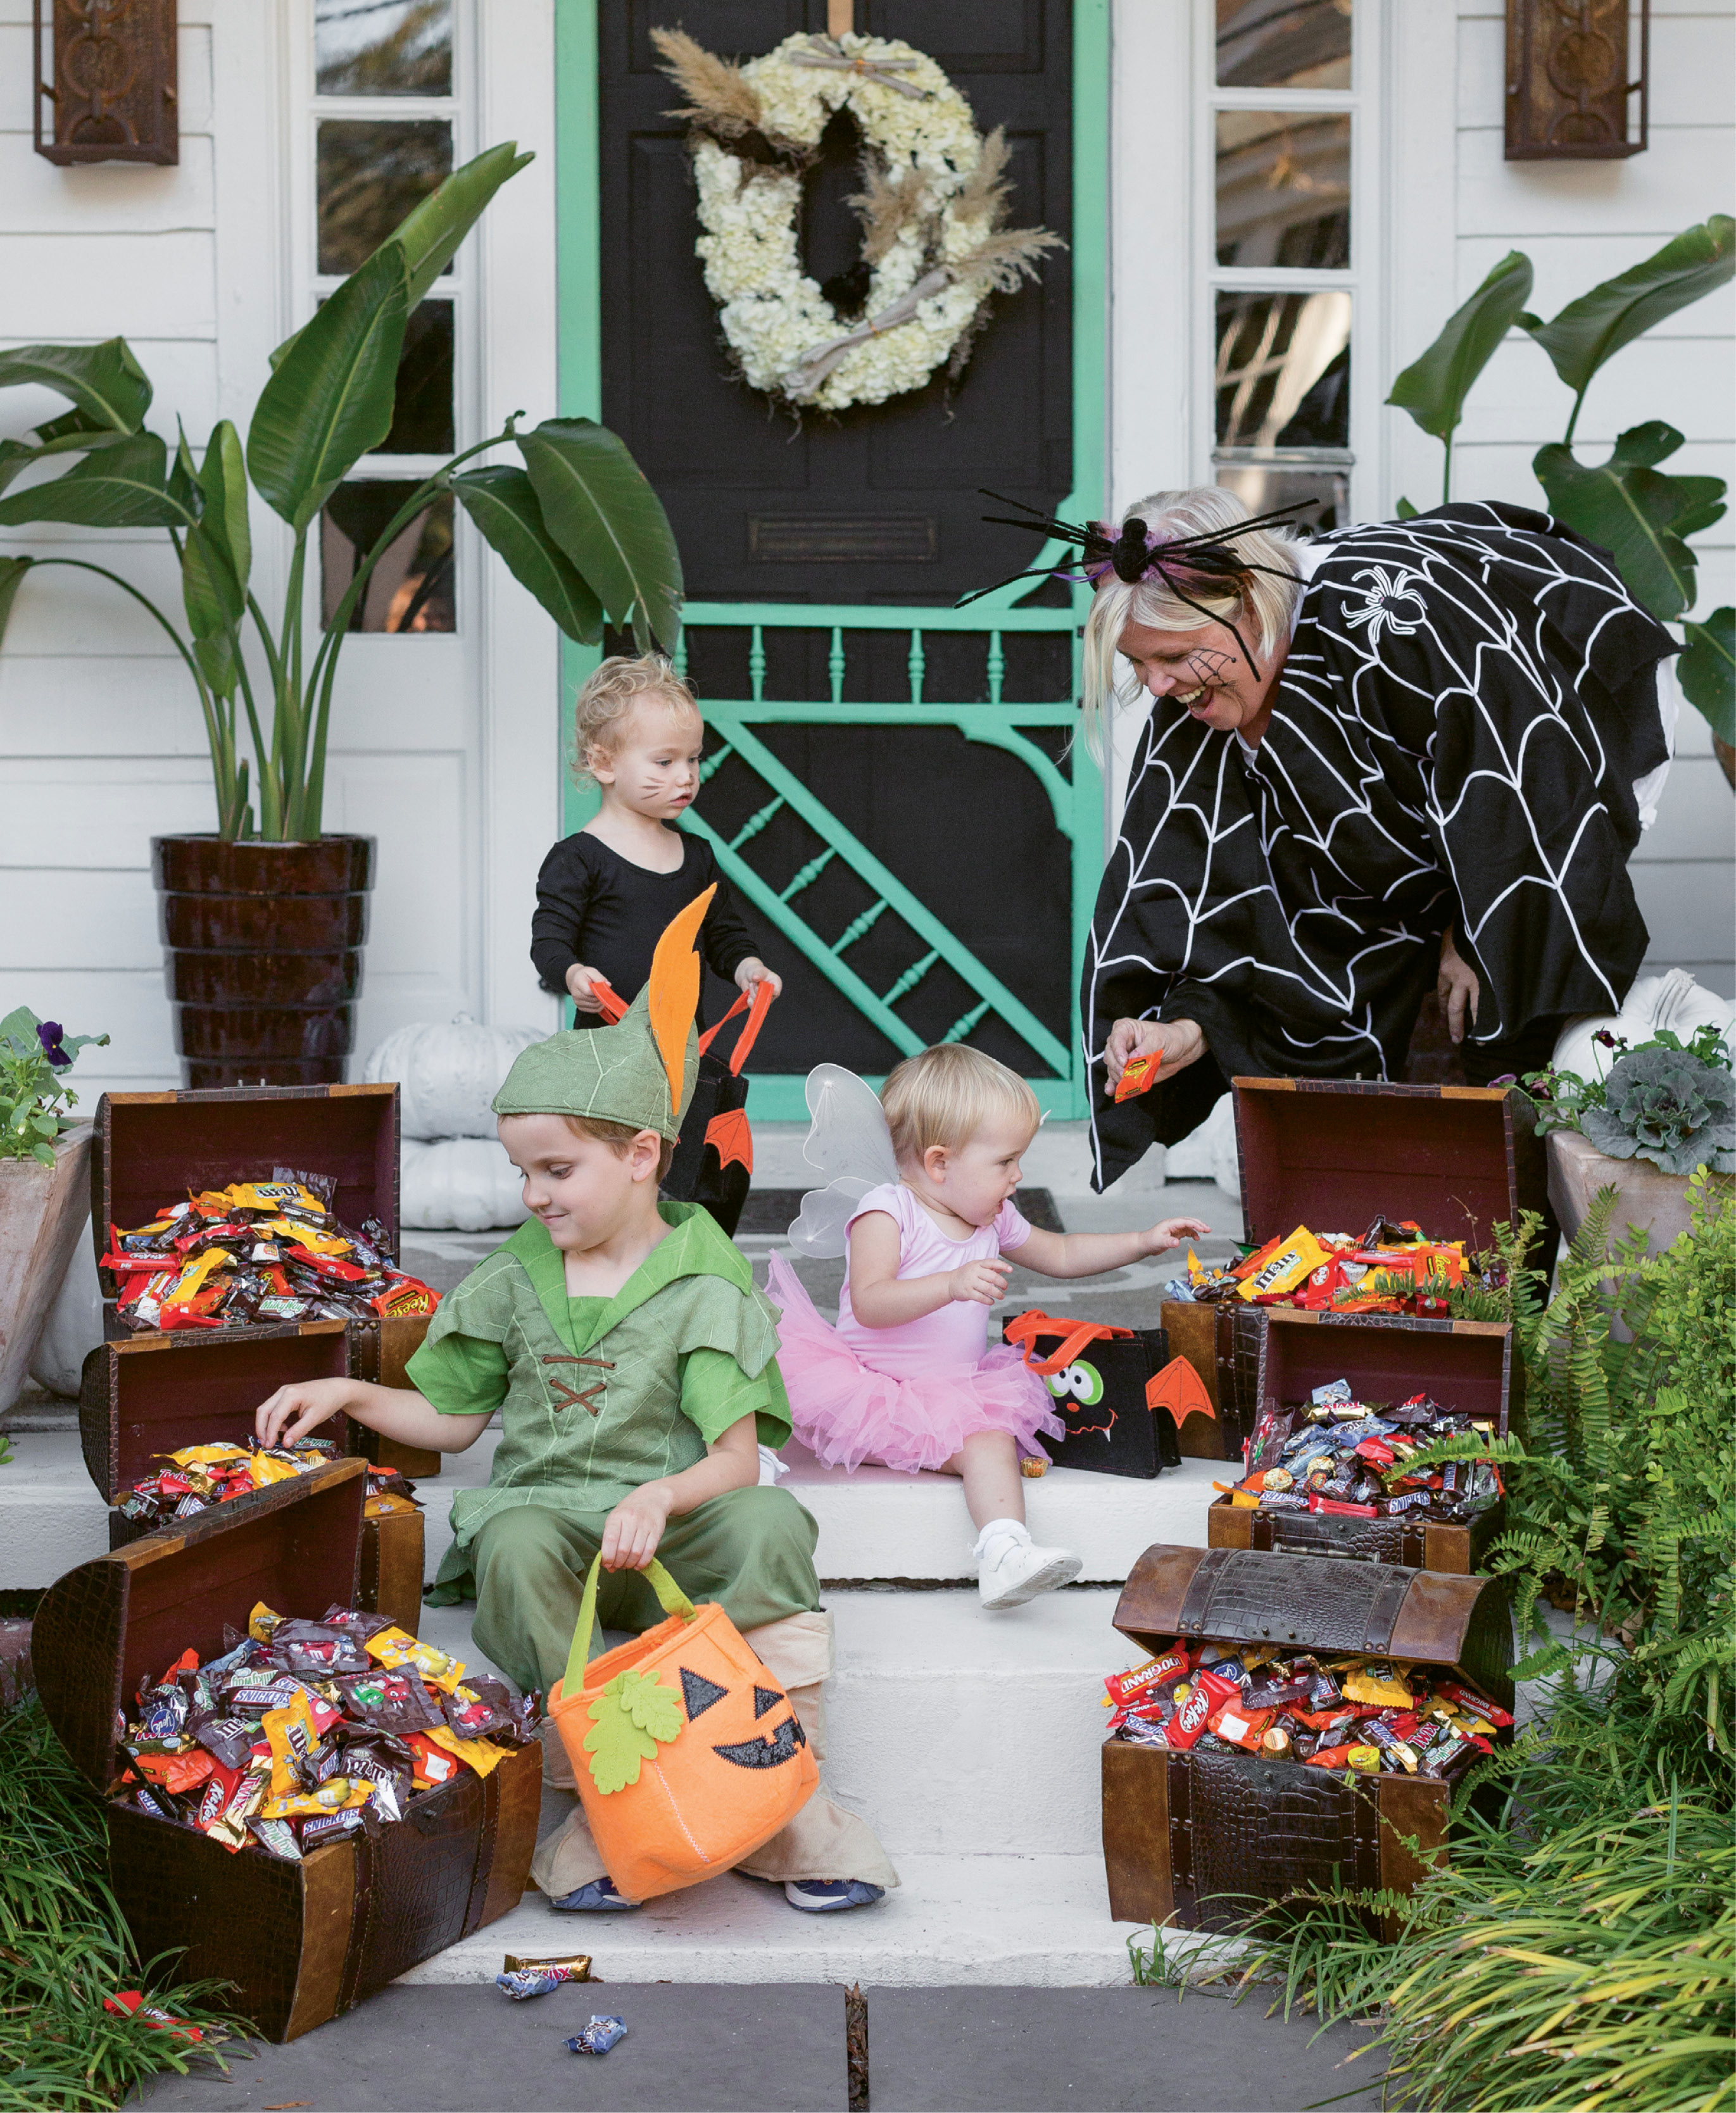 Lisa plans for about 400 visitors—pint- and parent-sized. Children get to choose three pieces of candy from these treasure chests.